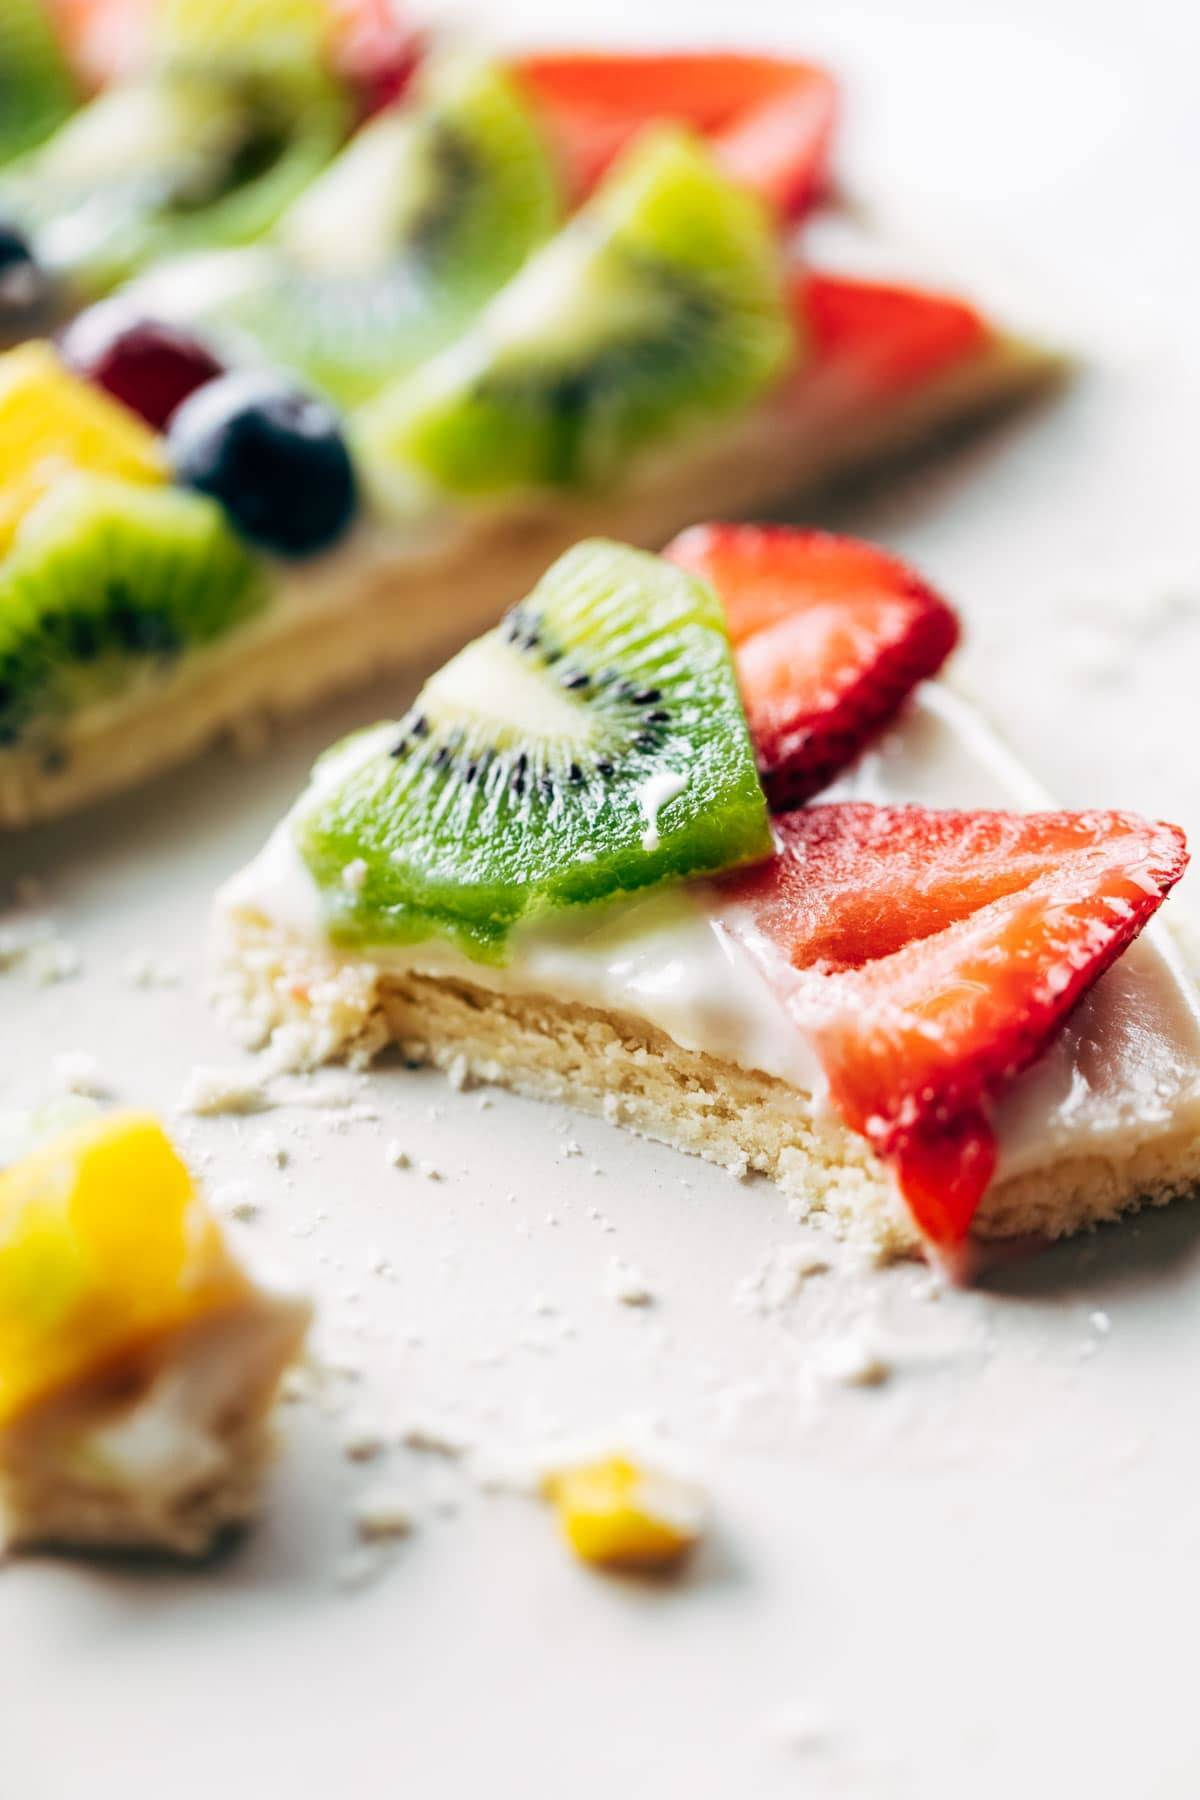 Close-up of fruit pizza.